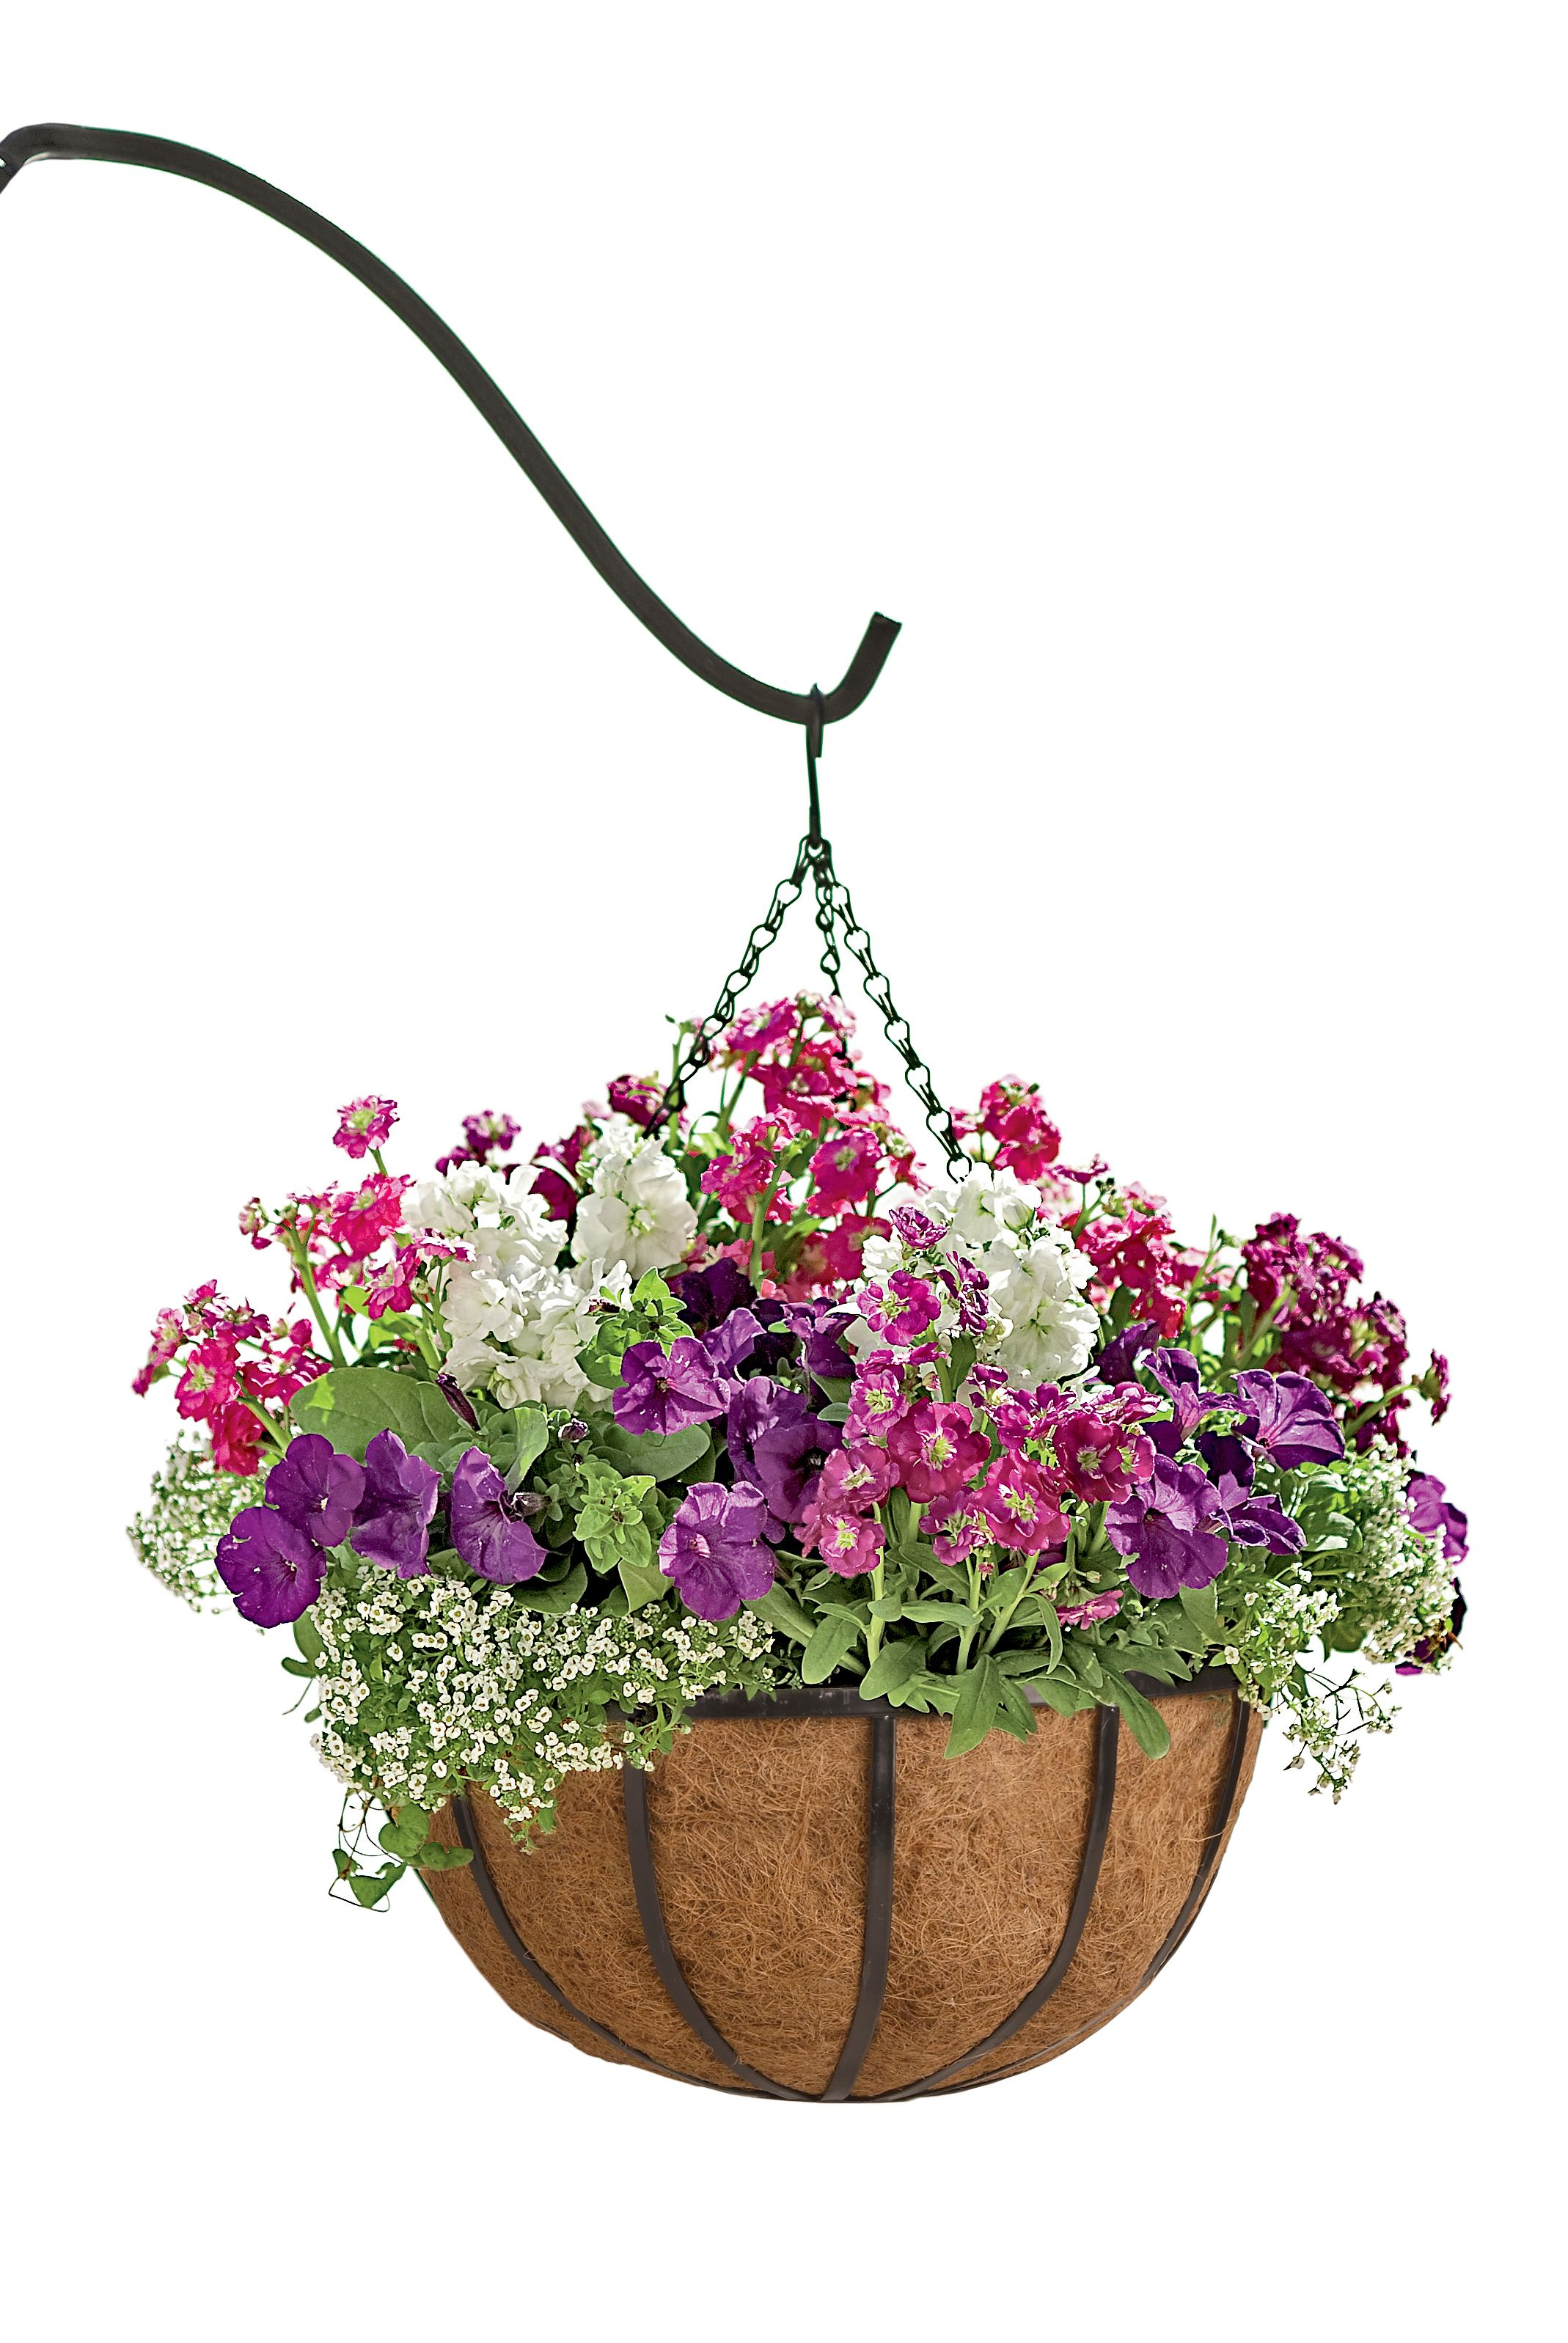 hanging flower baskets hanging flower baskets. Black Bedroom Furniture Sets. Home Design Ideas